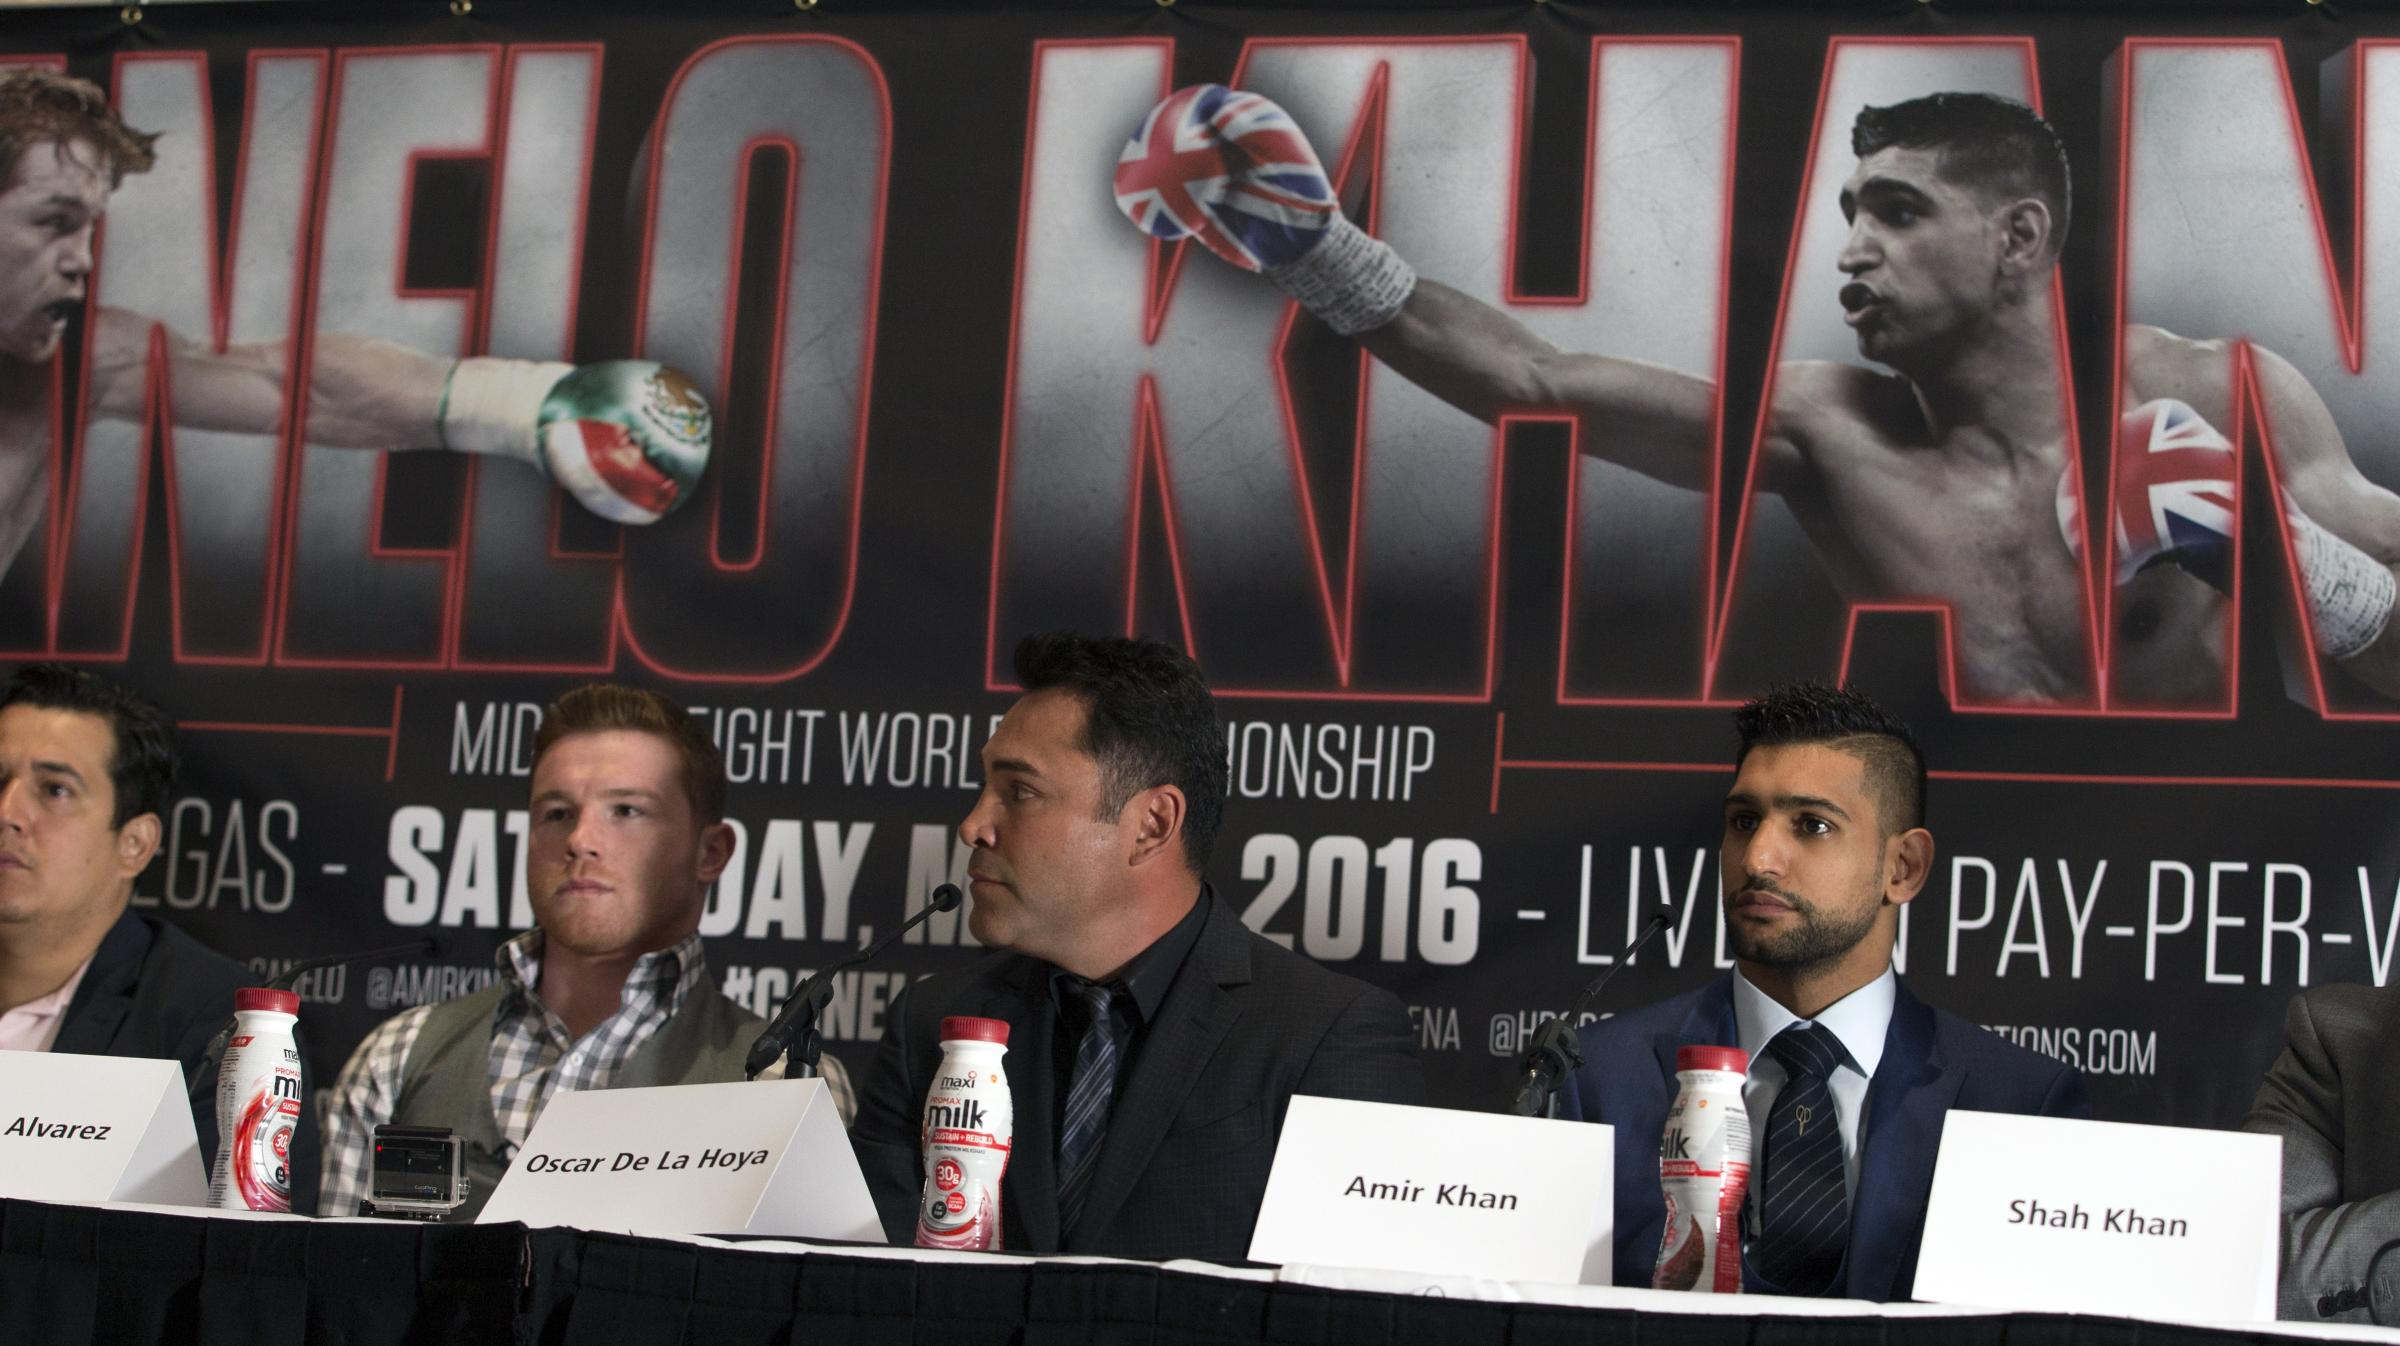 BIG FIGHT: Saul Alvarez (second left), boxing promoter Oscar De La Hoya and Amir Khan during a press conference in London yesterday